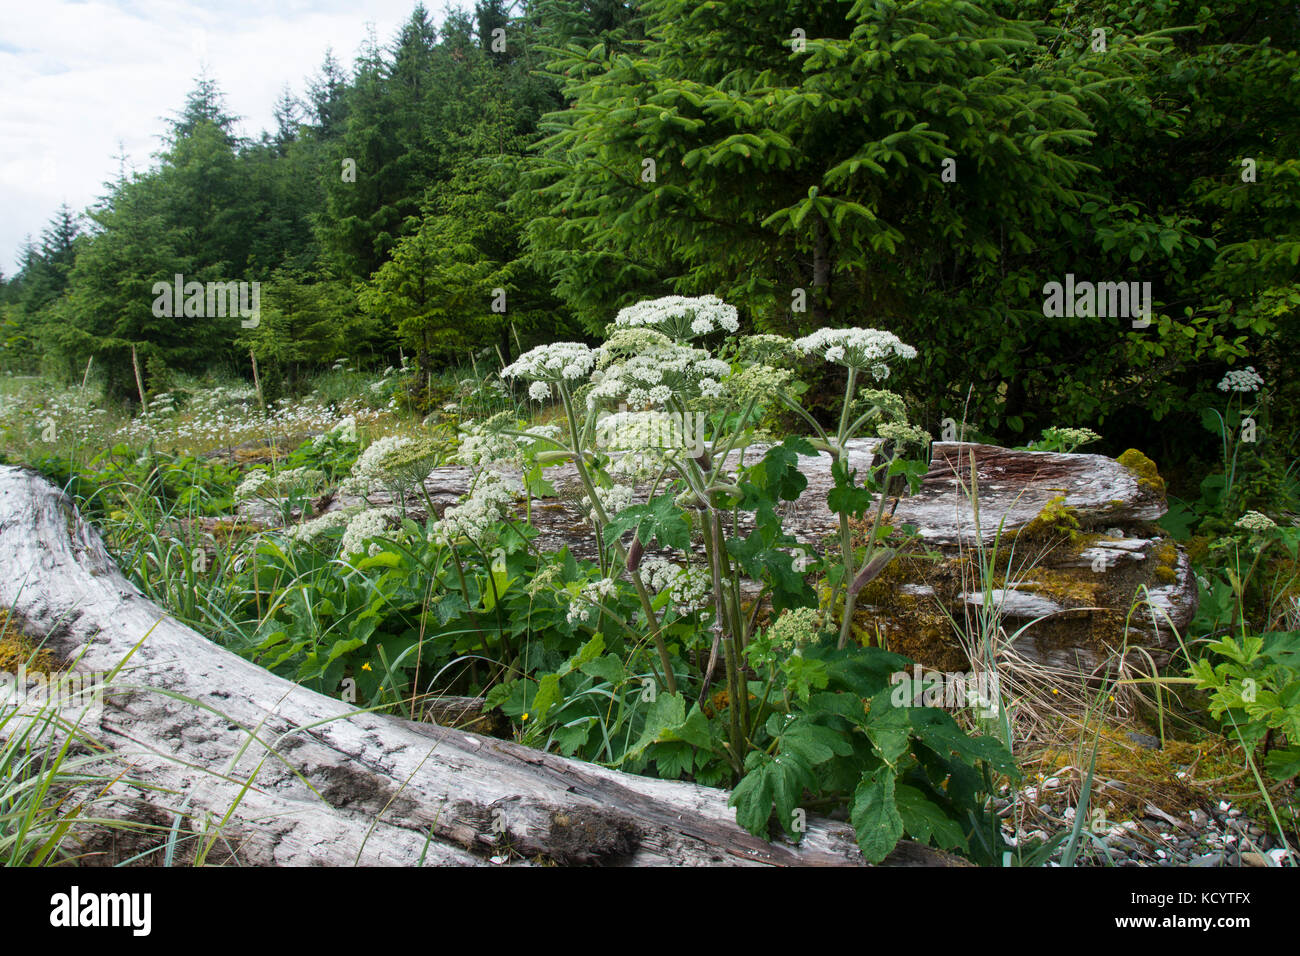 Cow parsnip, Heracleum maximum, on Haida Gwaii, formerly known as Queen Charlotte Islands, British Columbia, Canada - Stock Image